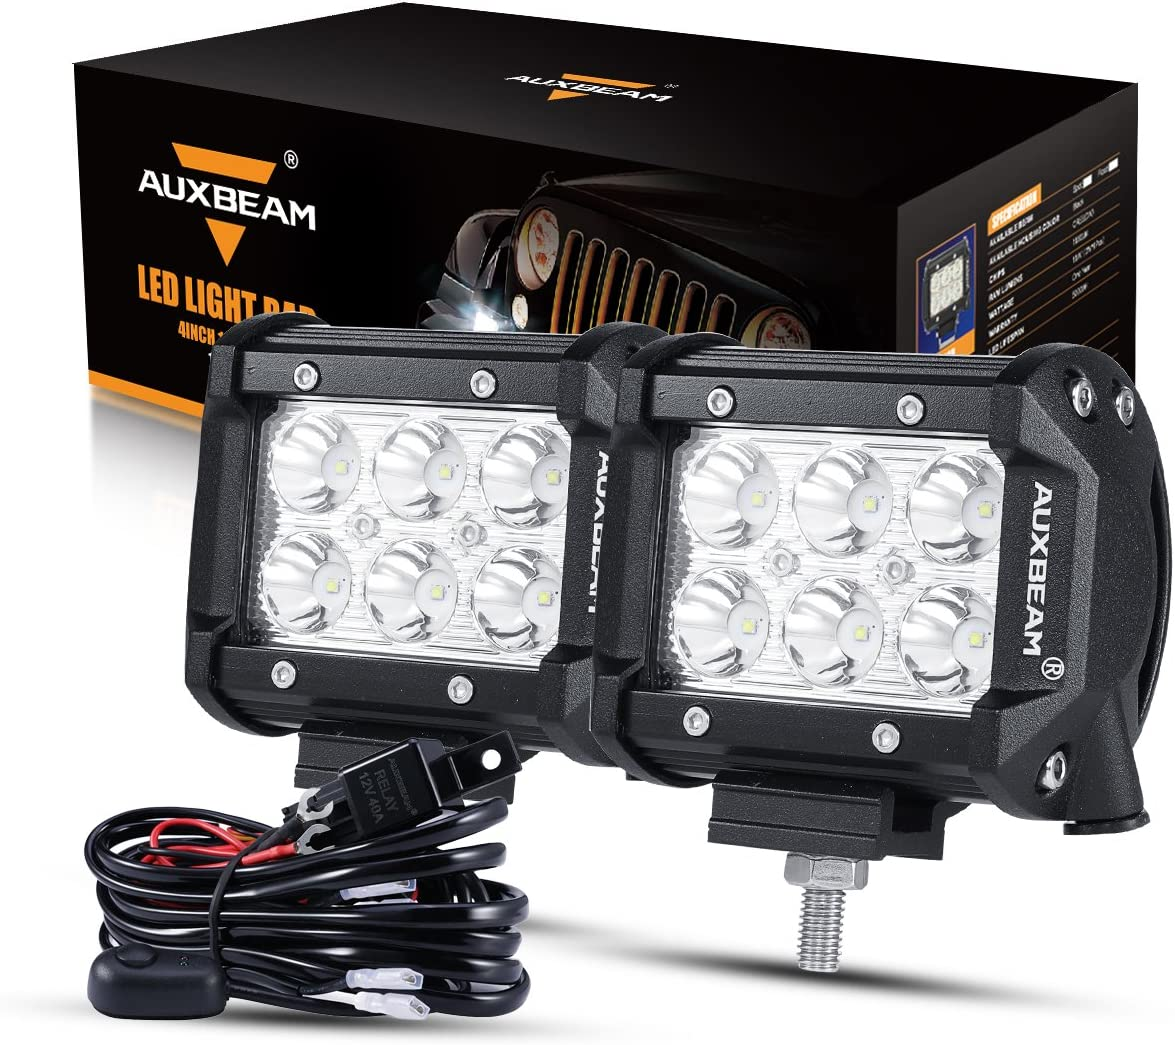 Auxbeam LED Light Bar 4 inch 18W LED Pods 1800lm Spot Beam Driving light Offroad lights with Wiring Harness (Pack of 2)